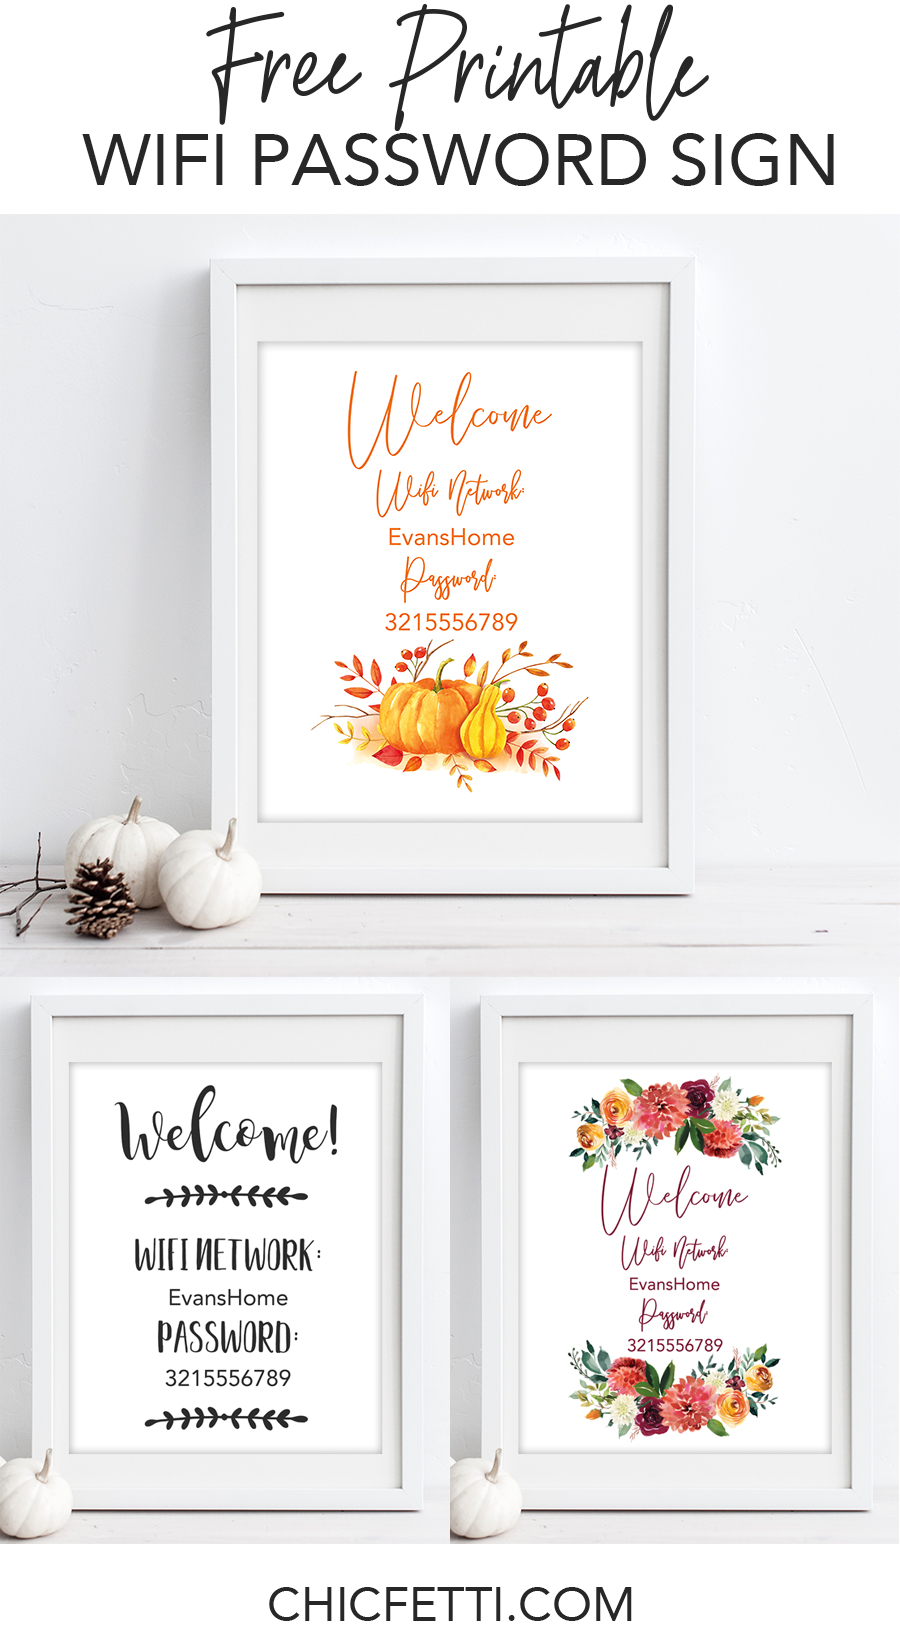 Free Printable Wifi Password Signs For Thanksgiving | Free - Free Printable Wifi Password Signs